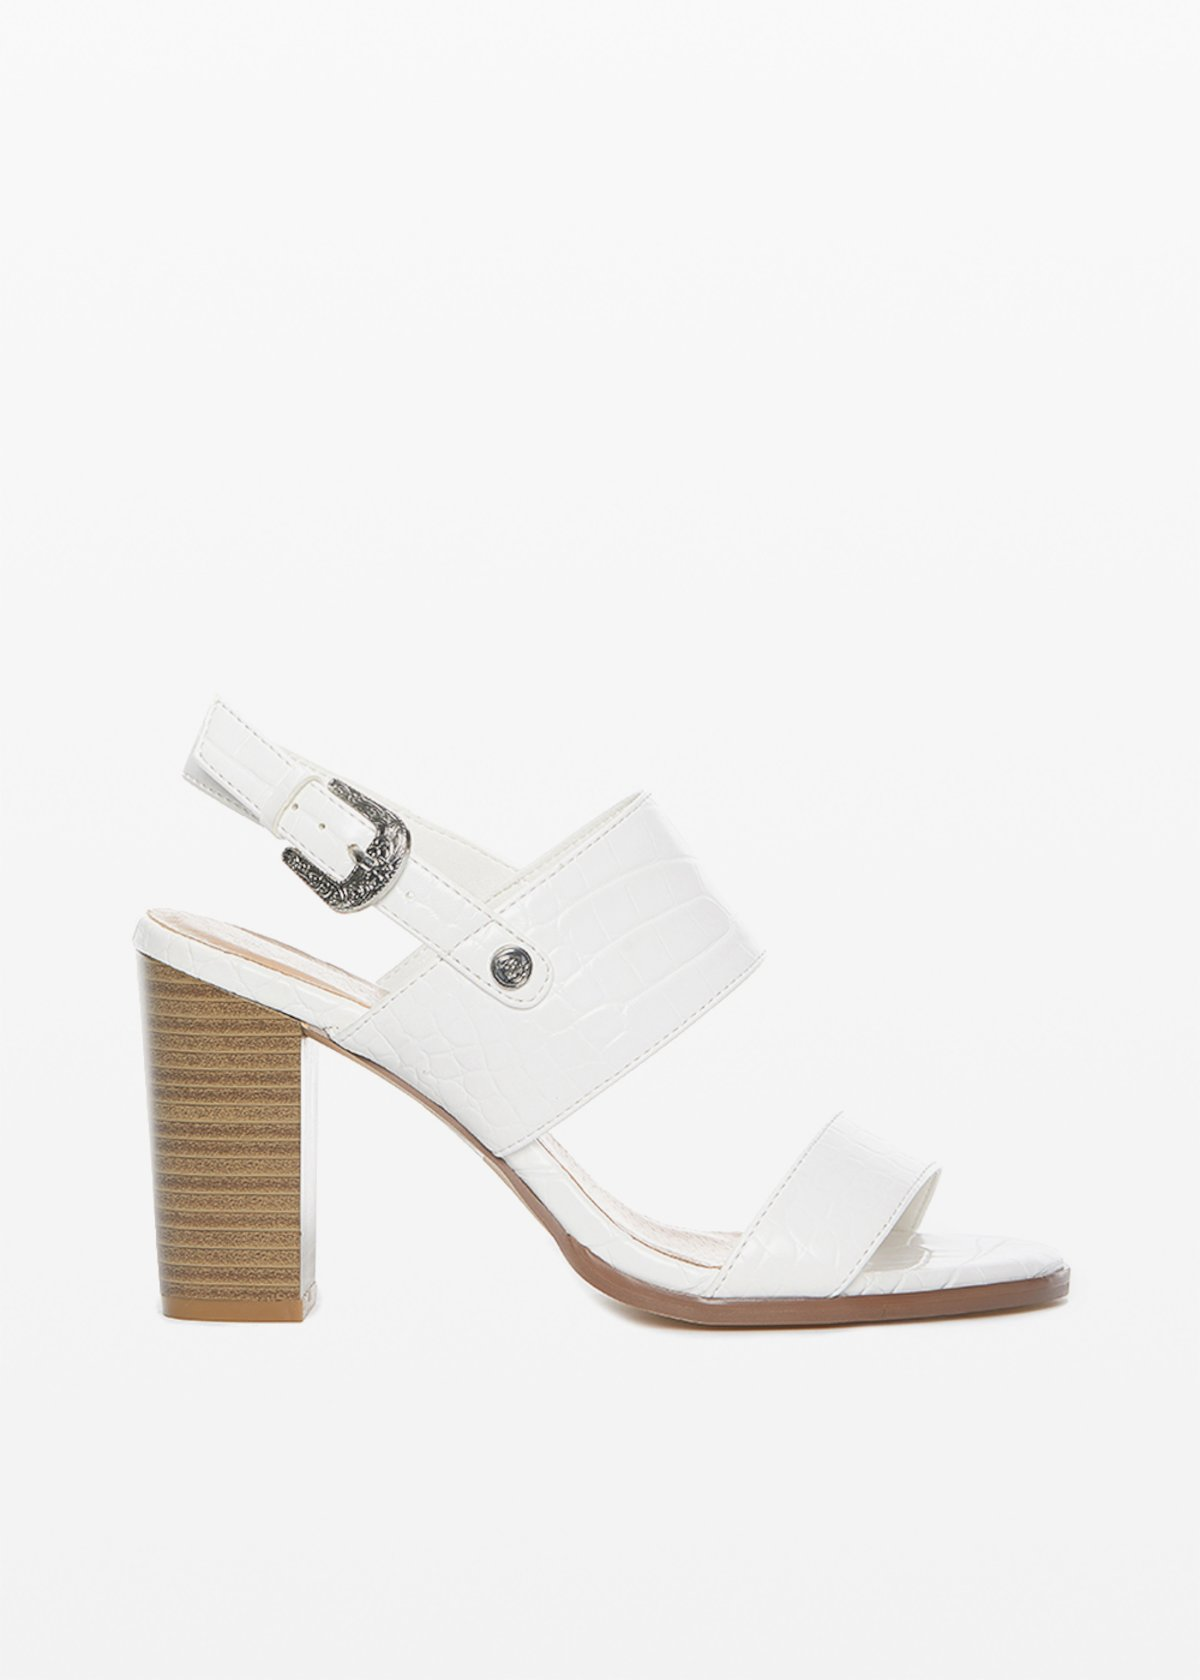 Shayla faux leather sandal crocodile effect - White - Woman